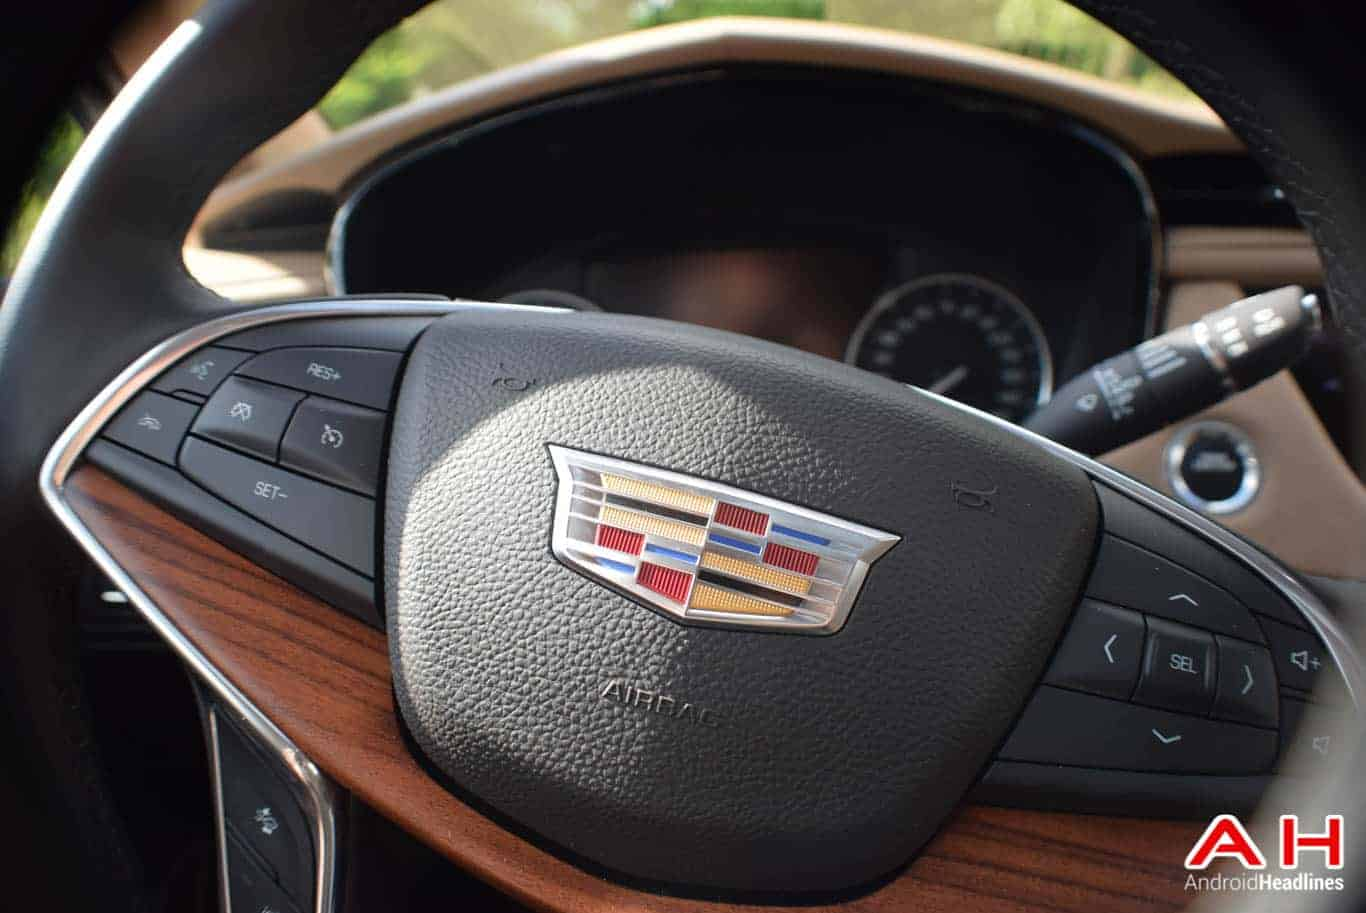 2017 Cadillac XT5 Android Auto Review AM AH 19